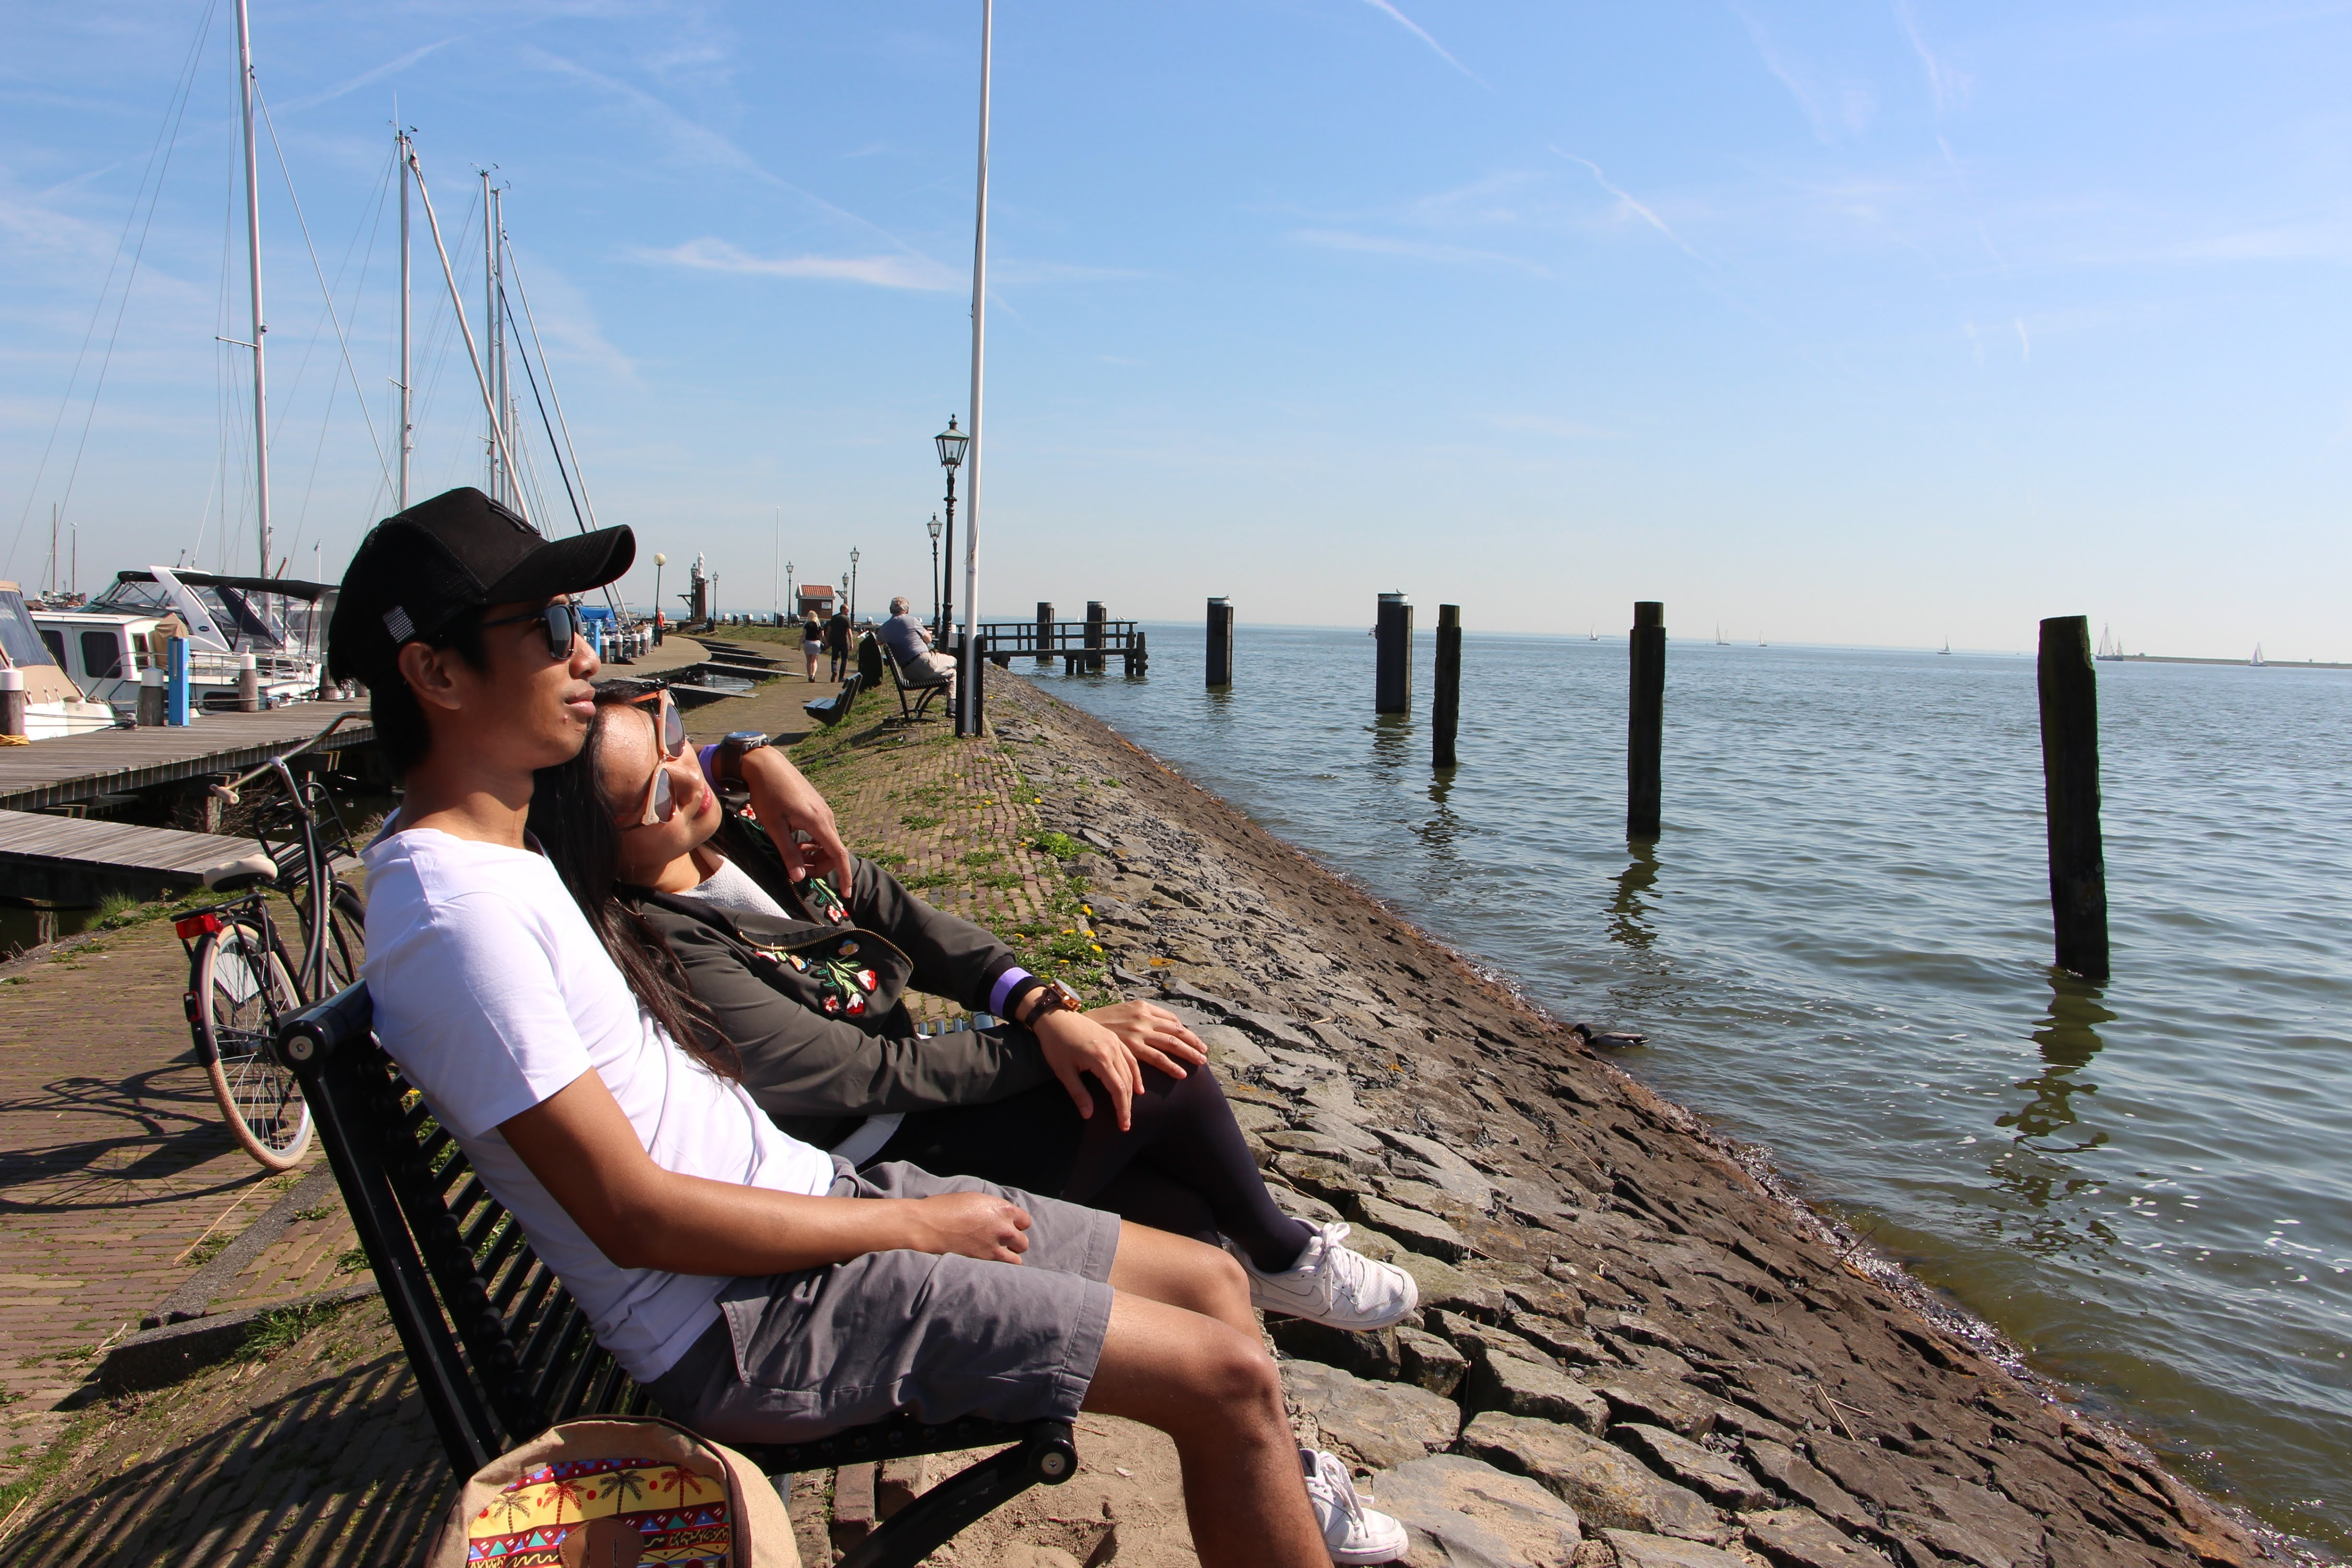 A quick rest by the fishing harbor of Volendam